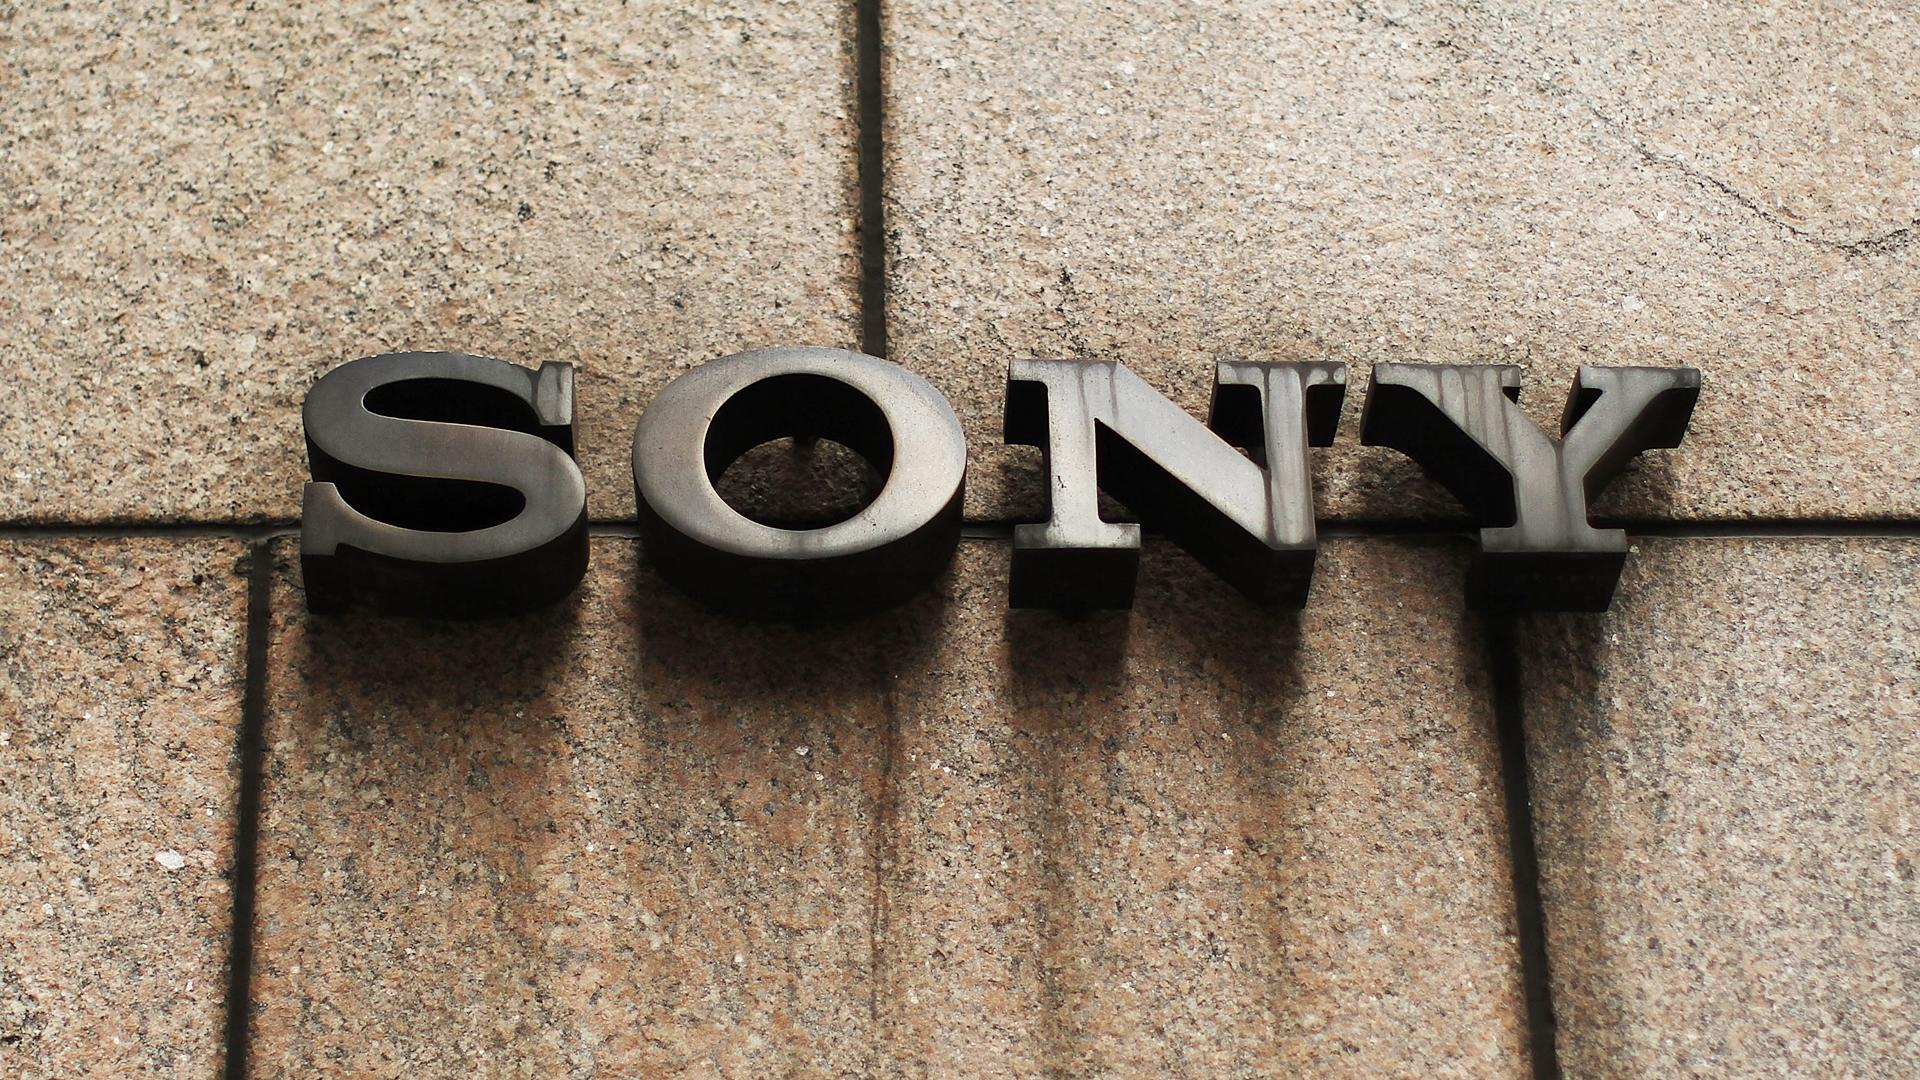 Sony to Cut Additional 1,000 Phone Jobs, Say Reports